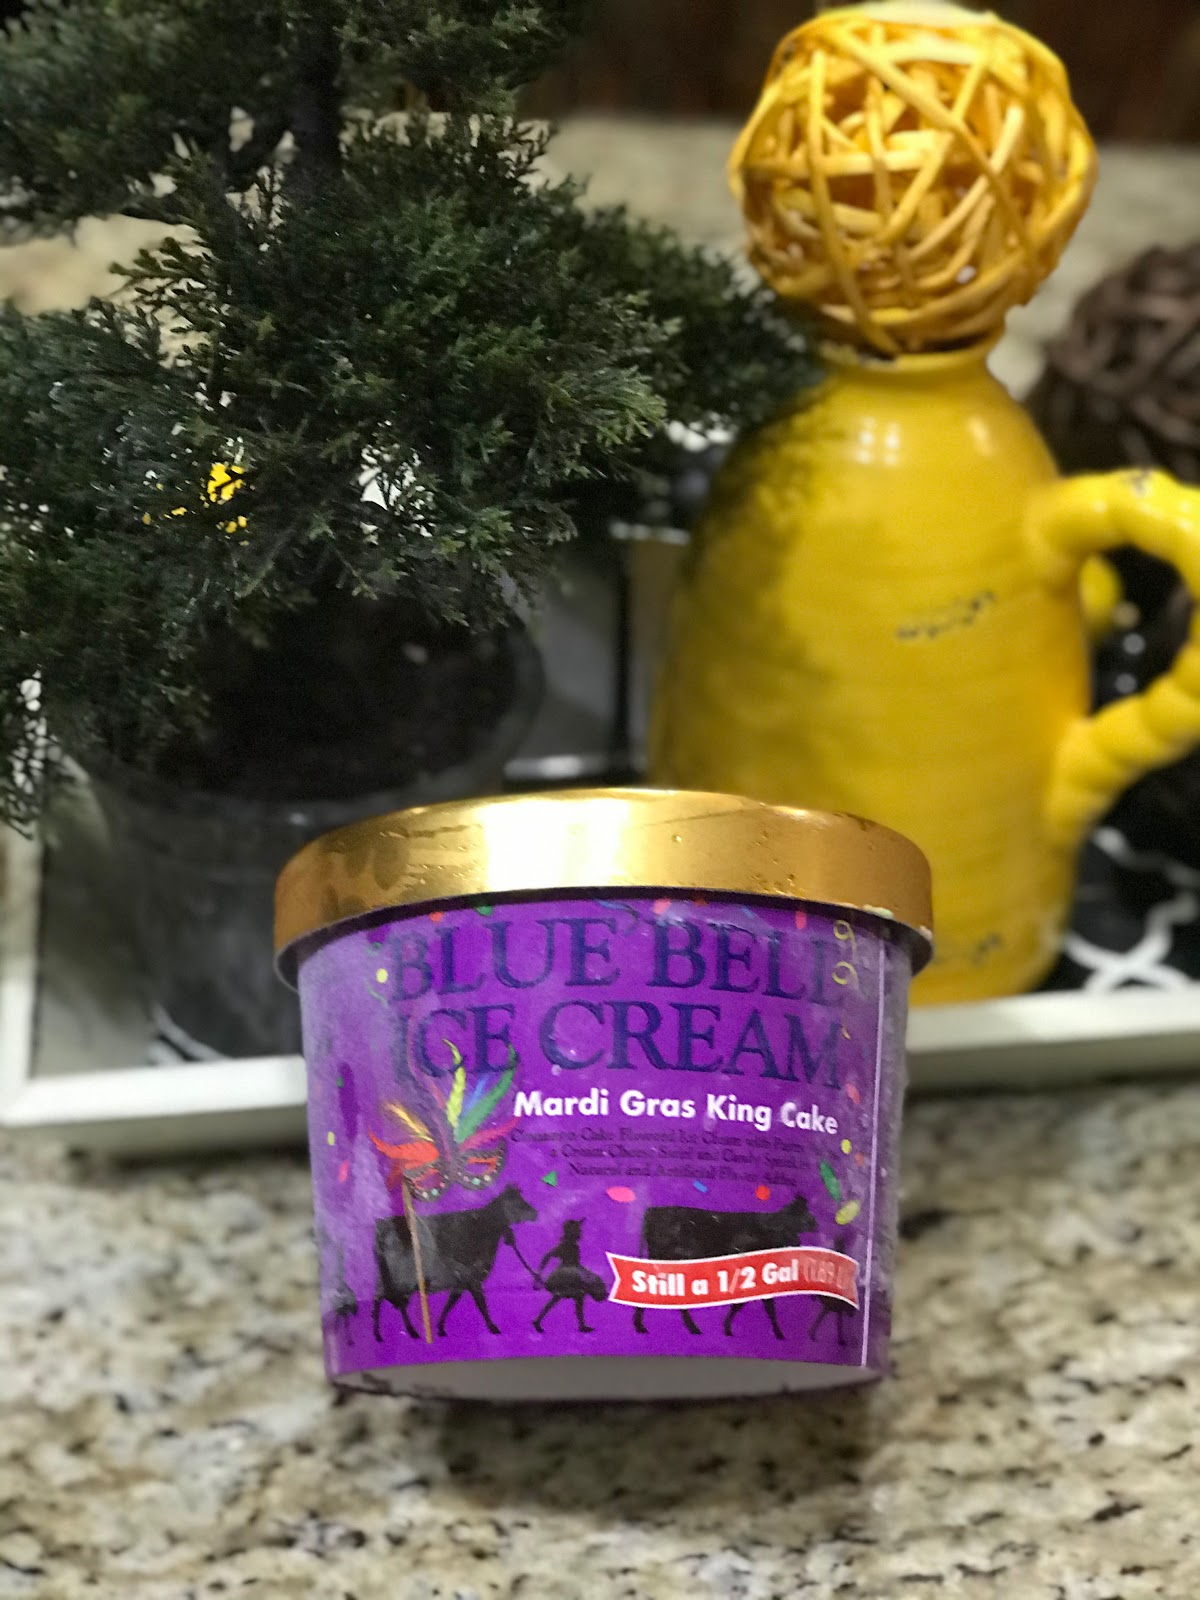 Bought Blue Bell Mardi Gras King Cake Ice-Cream-  Oh, and I must share my new favorite ice-cream at the moment. My husband finally got his hands on a half-gallon of Blue Bell Mardi Gras King Cake ice-cream. Yes, I was super excited to see he bought us two tubs of it. I'm not sure if one is all his or for the whole family. LOL, either way, my bowl was filled to the brim with a slice of cake